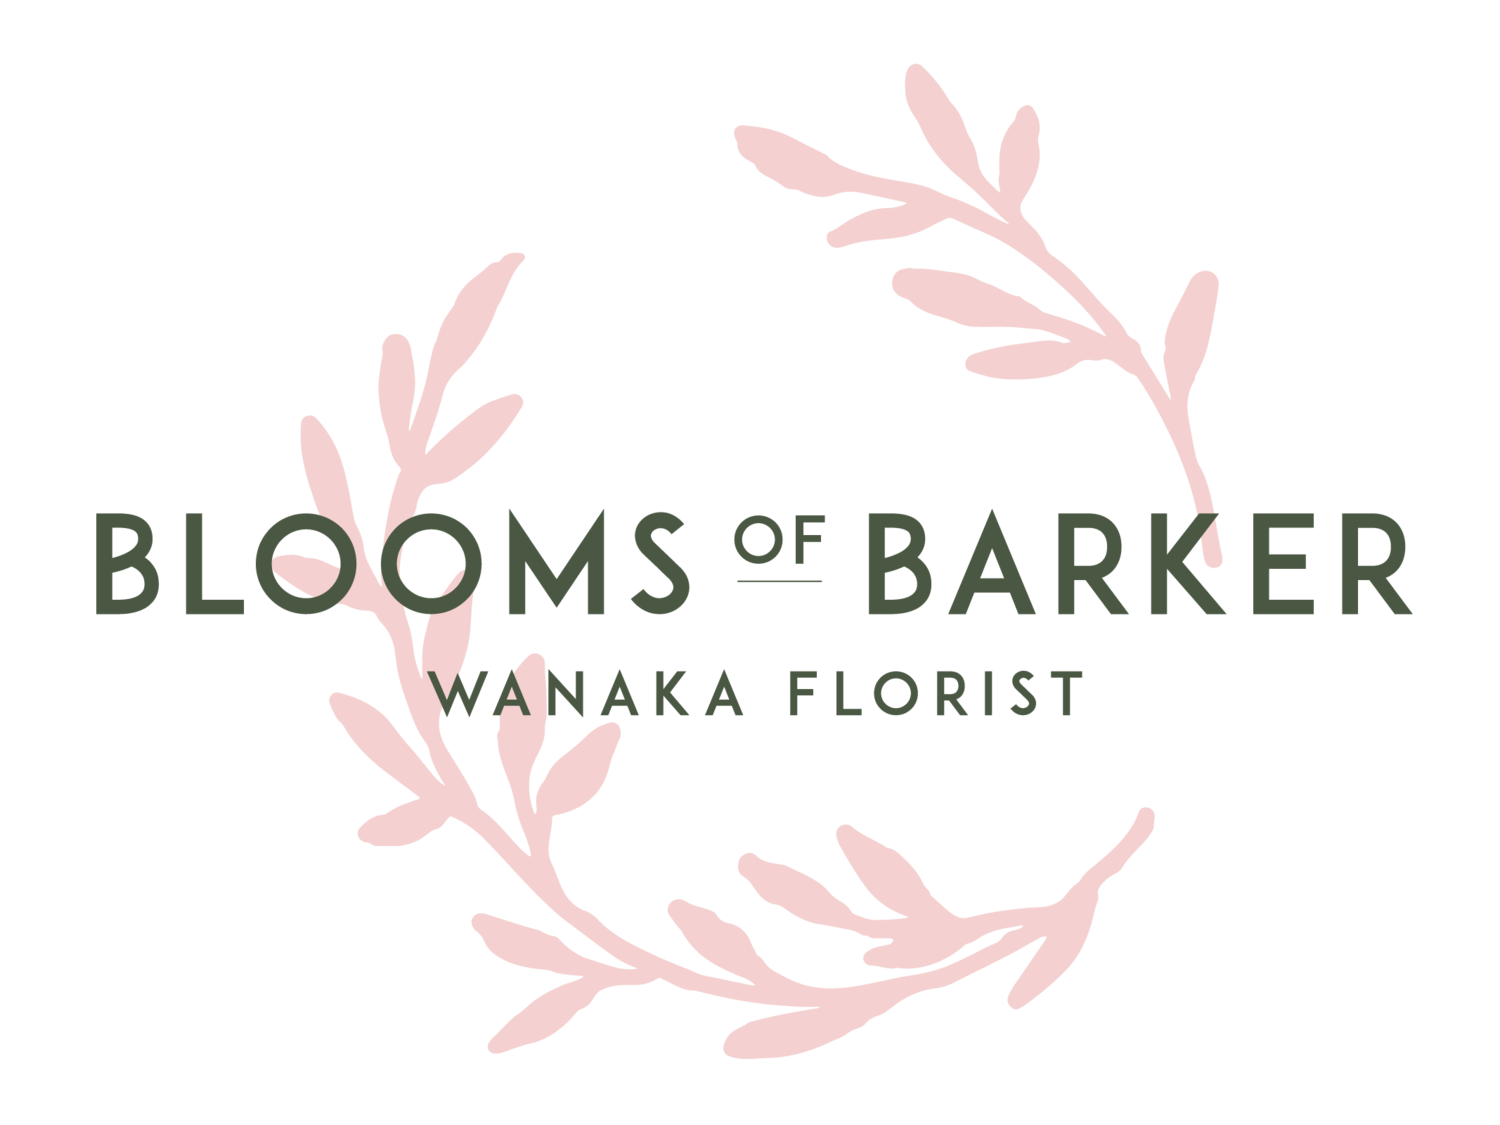 Blooms of Barker